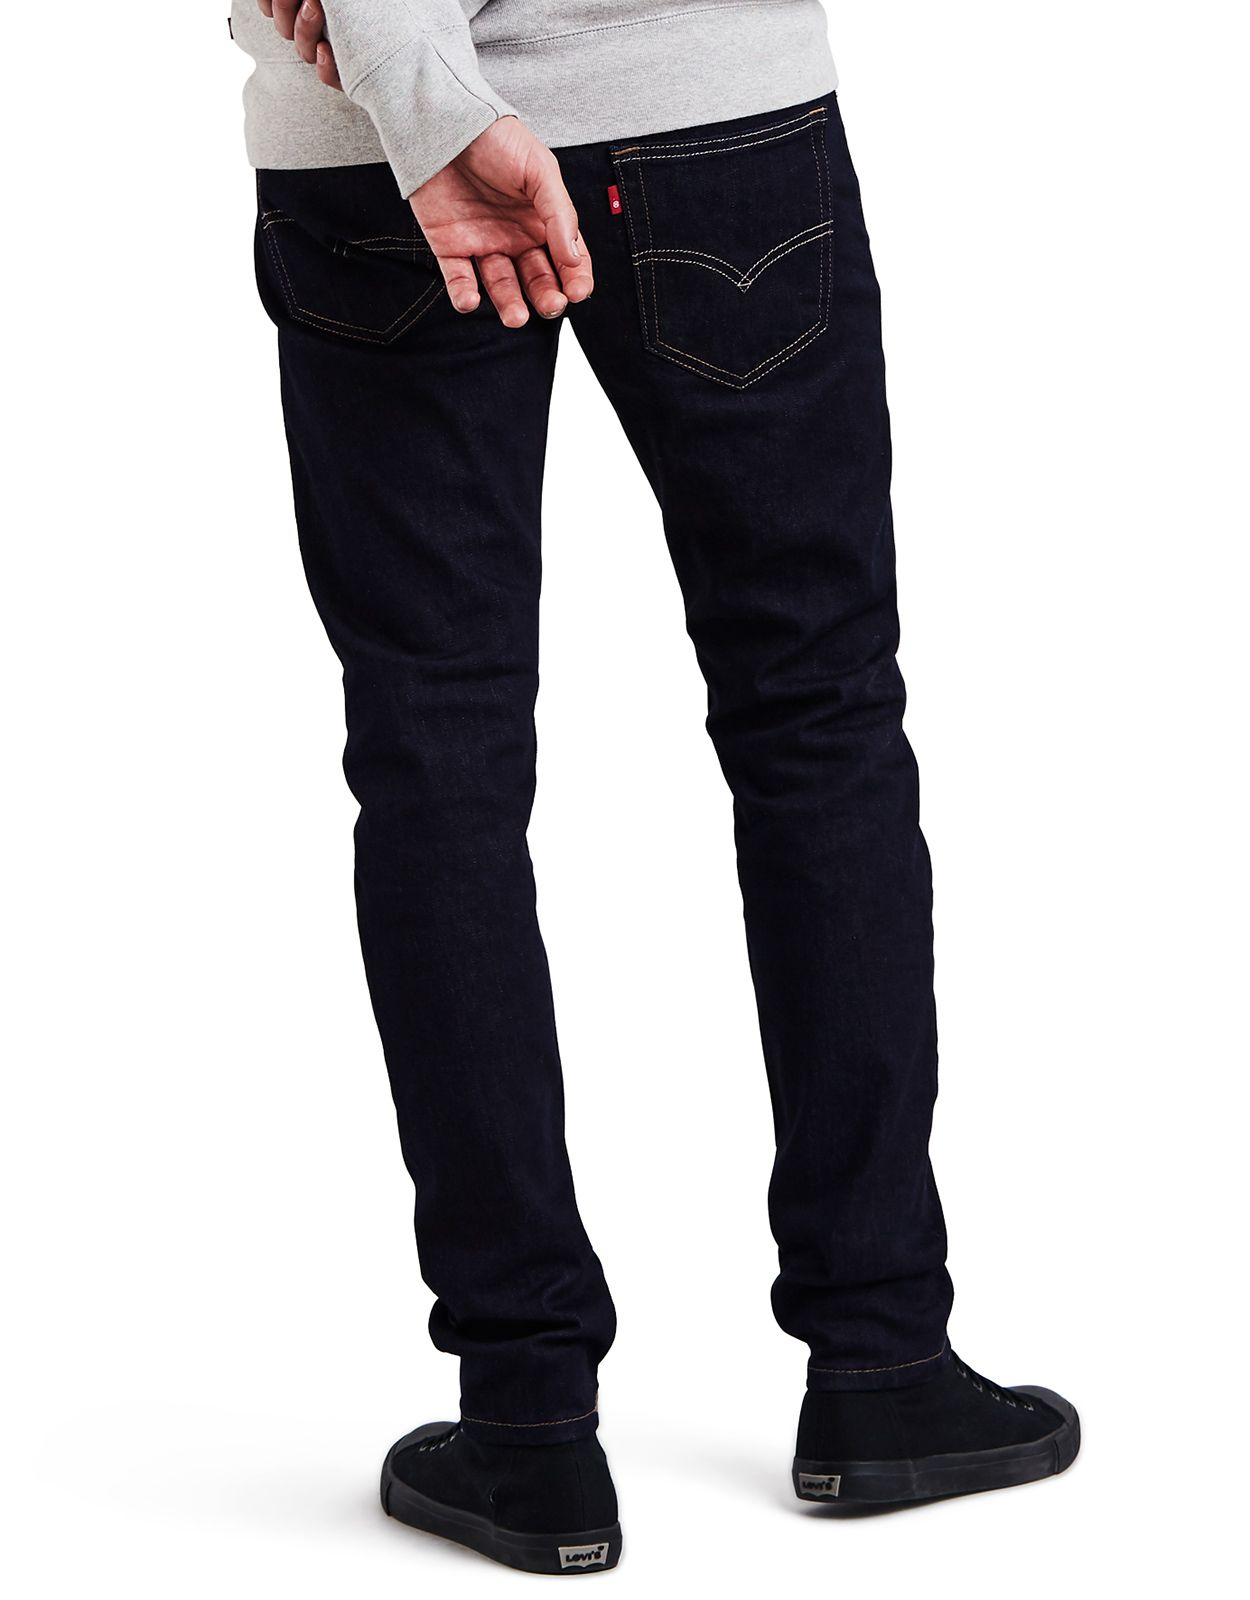 Levi's Men's 512 Stretch Low Rise Slim Fit Tapered Leg Jeans - Dark Hollow